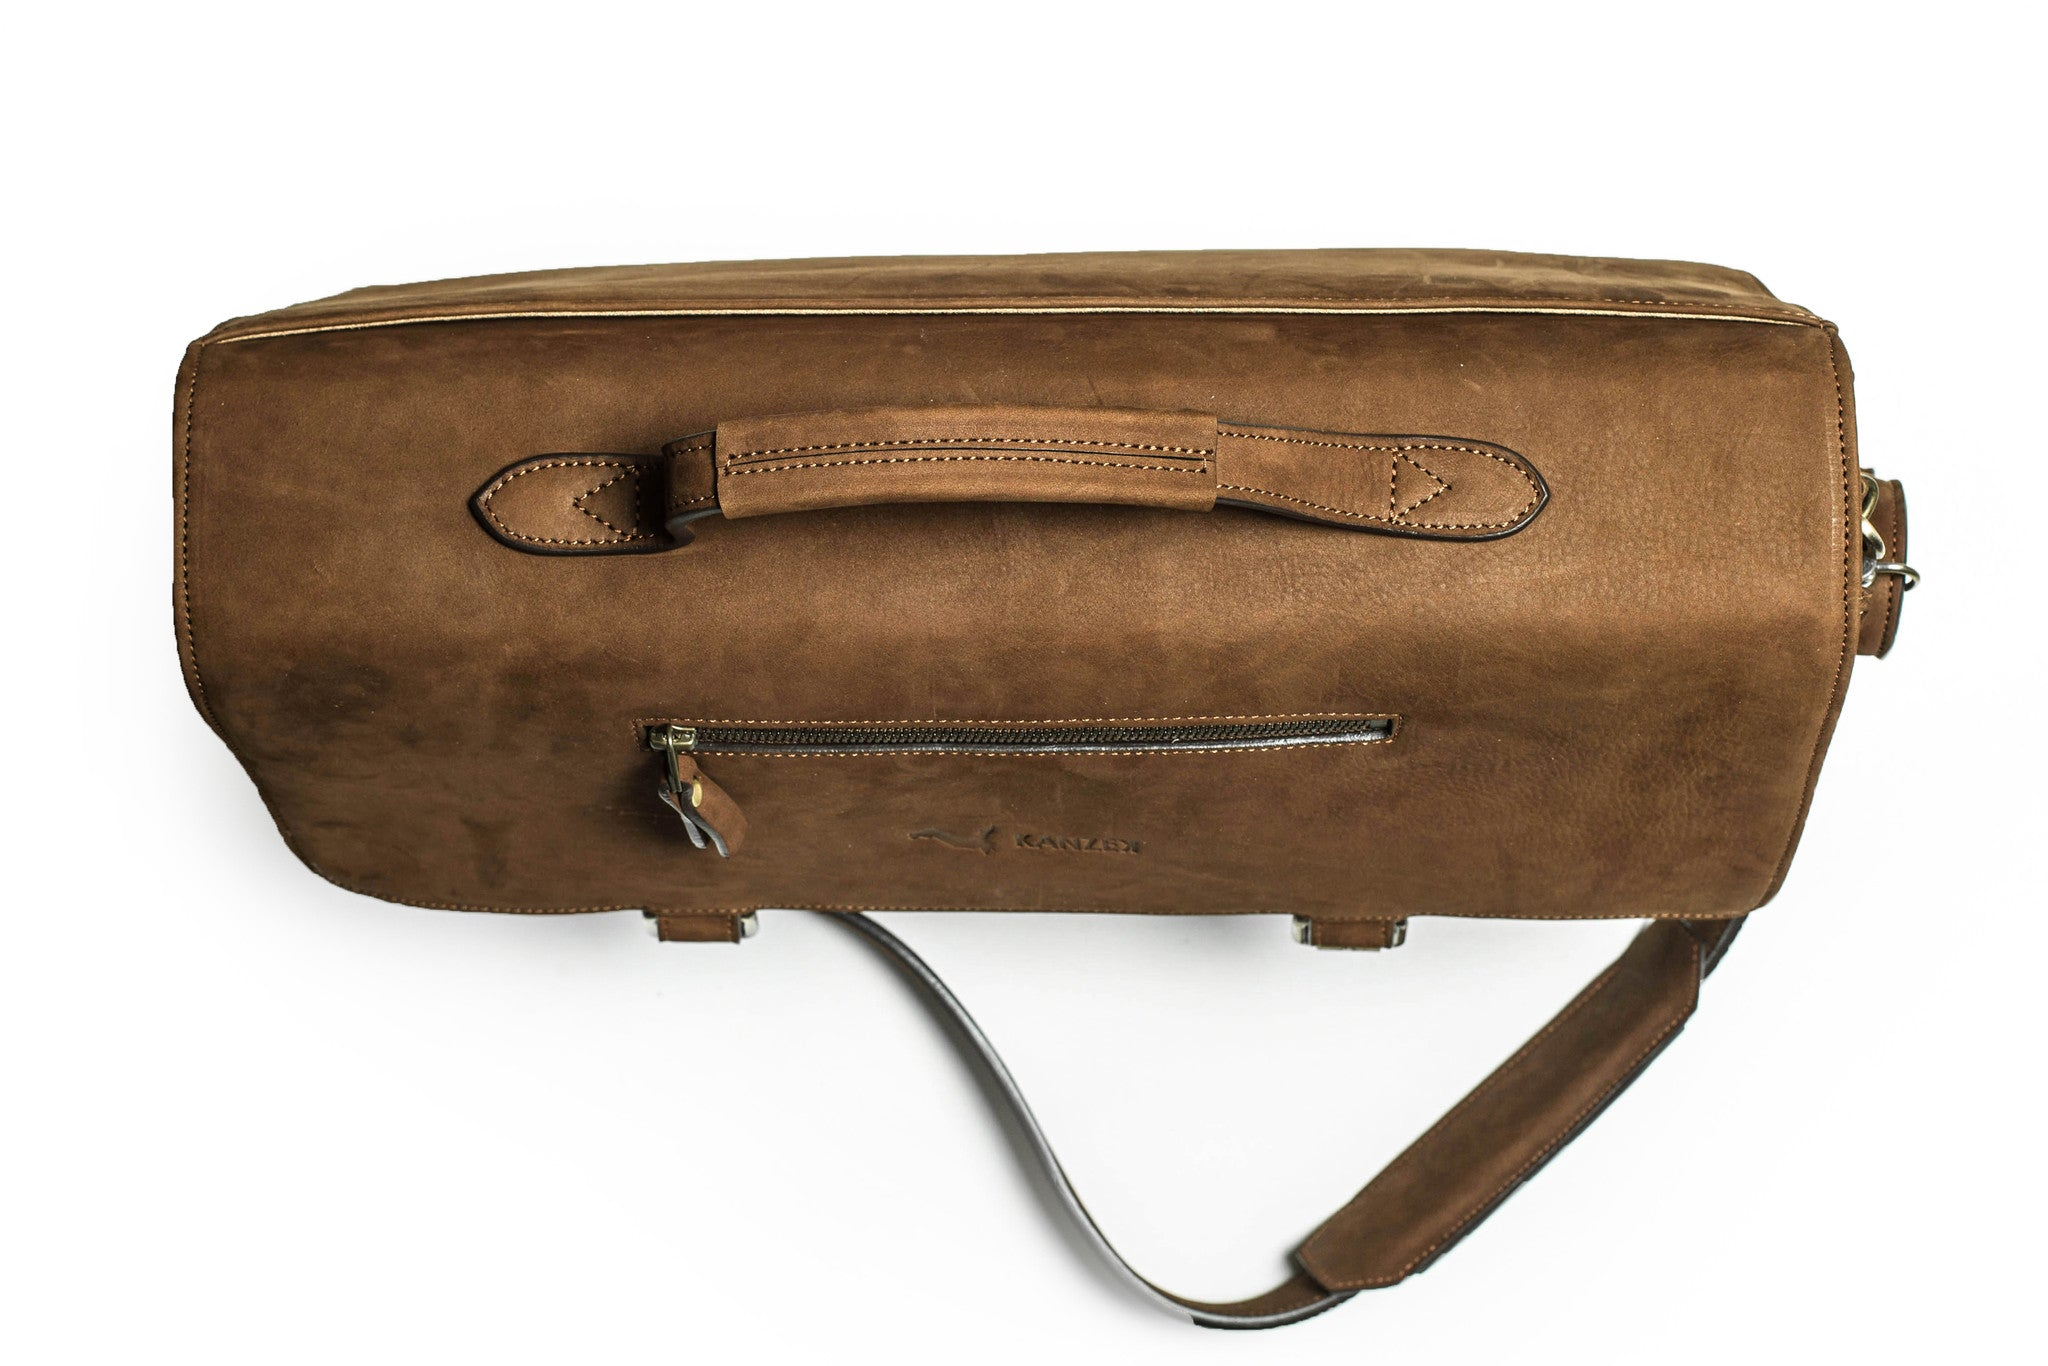 "17.3"" Leather Laptop Messenger Bag in Vintage Cognac - The Brave Nostalgia Satchel"